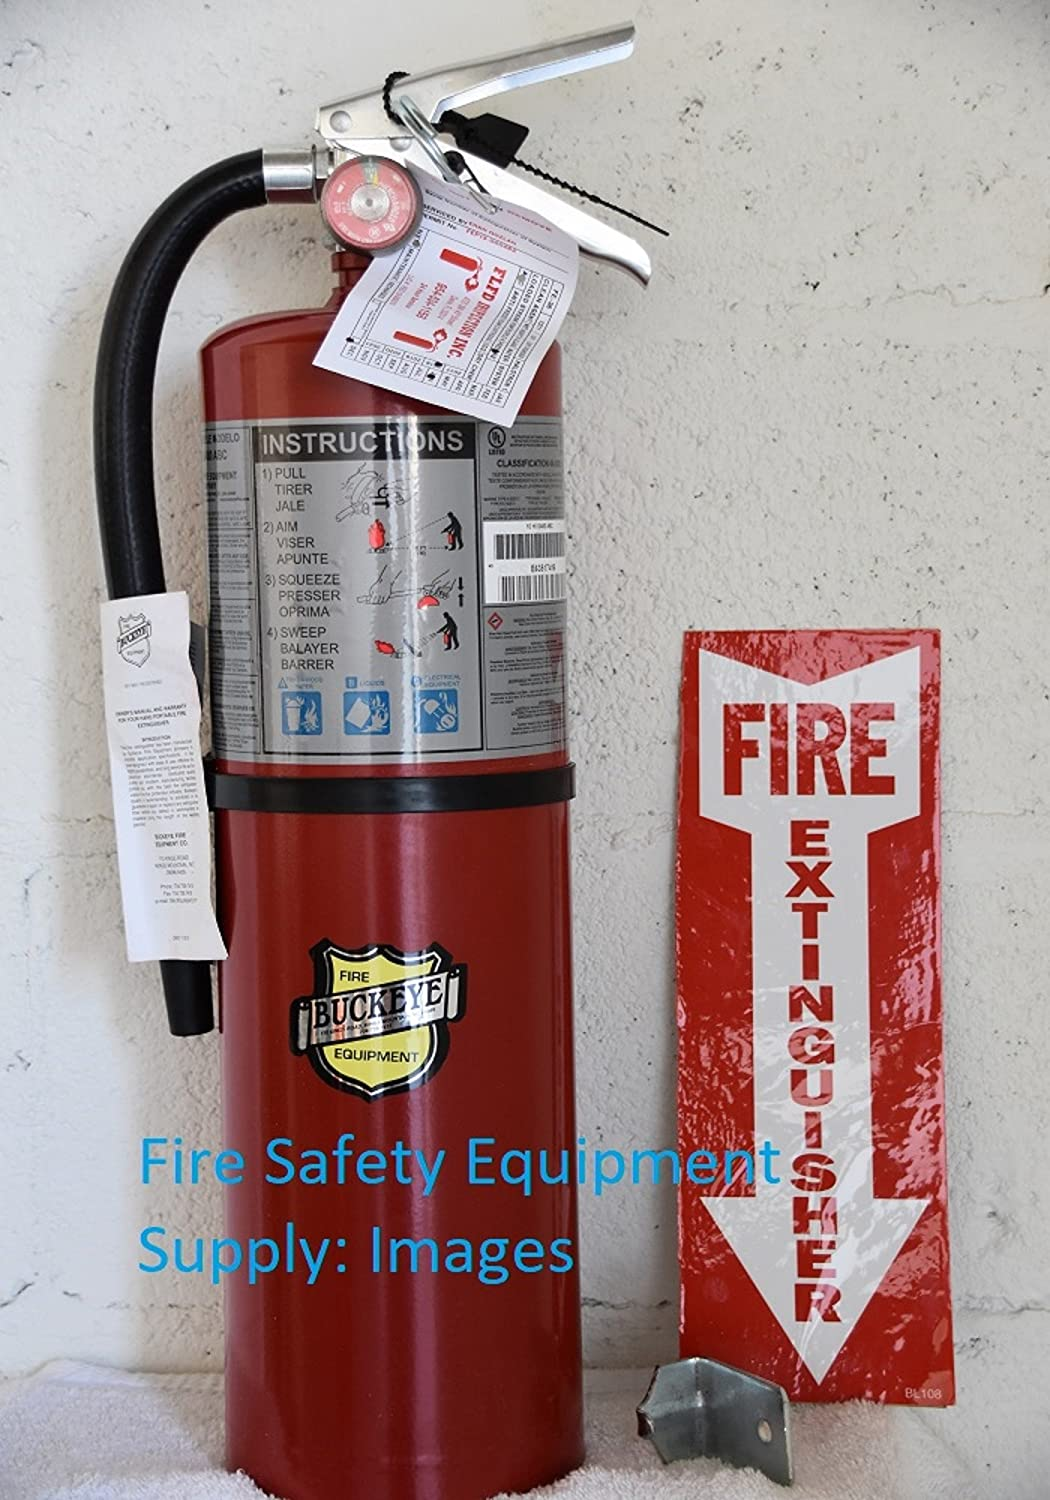 ( Lot of 2 ) Buckeye 10 LB. ABC Fire Extinguisher - Rechargeable and Certified (Tagged) Ready for Fire Inspections, Wall Hook Bracket, and Arrow Sign Included to Mark the Spot UL Rating 4A - 80 B:C 11340-2